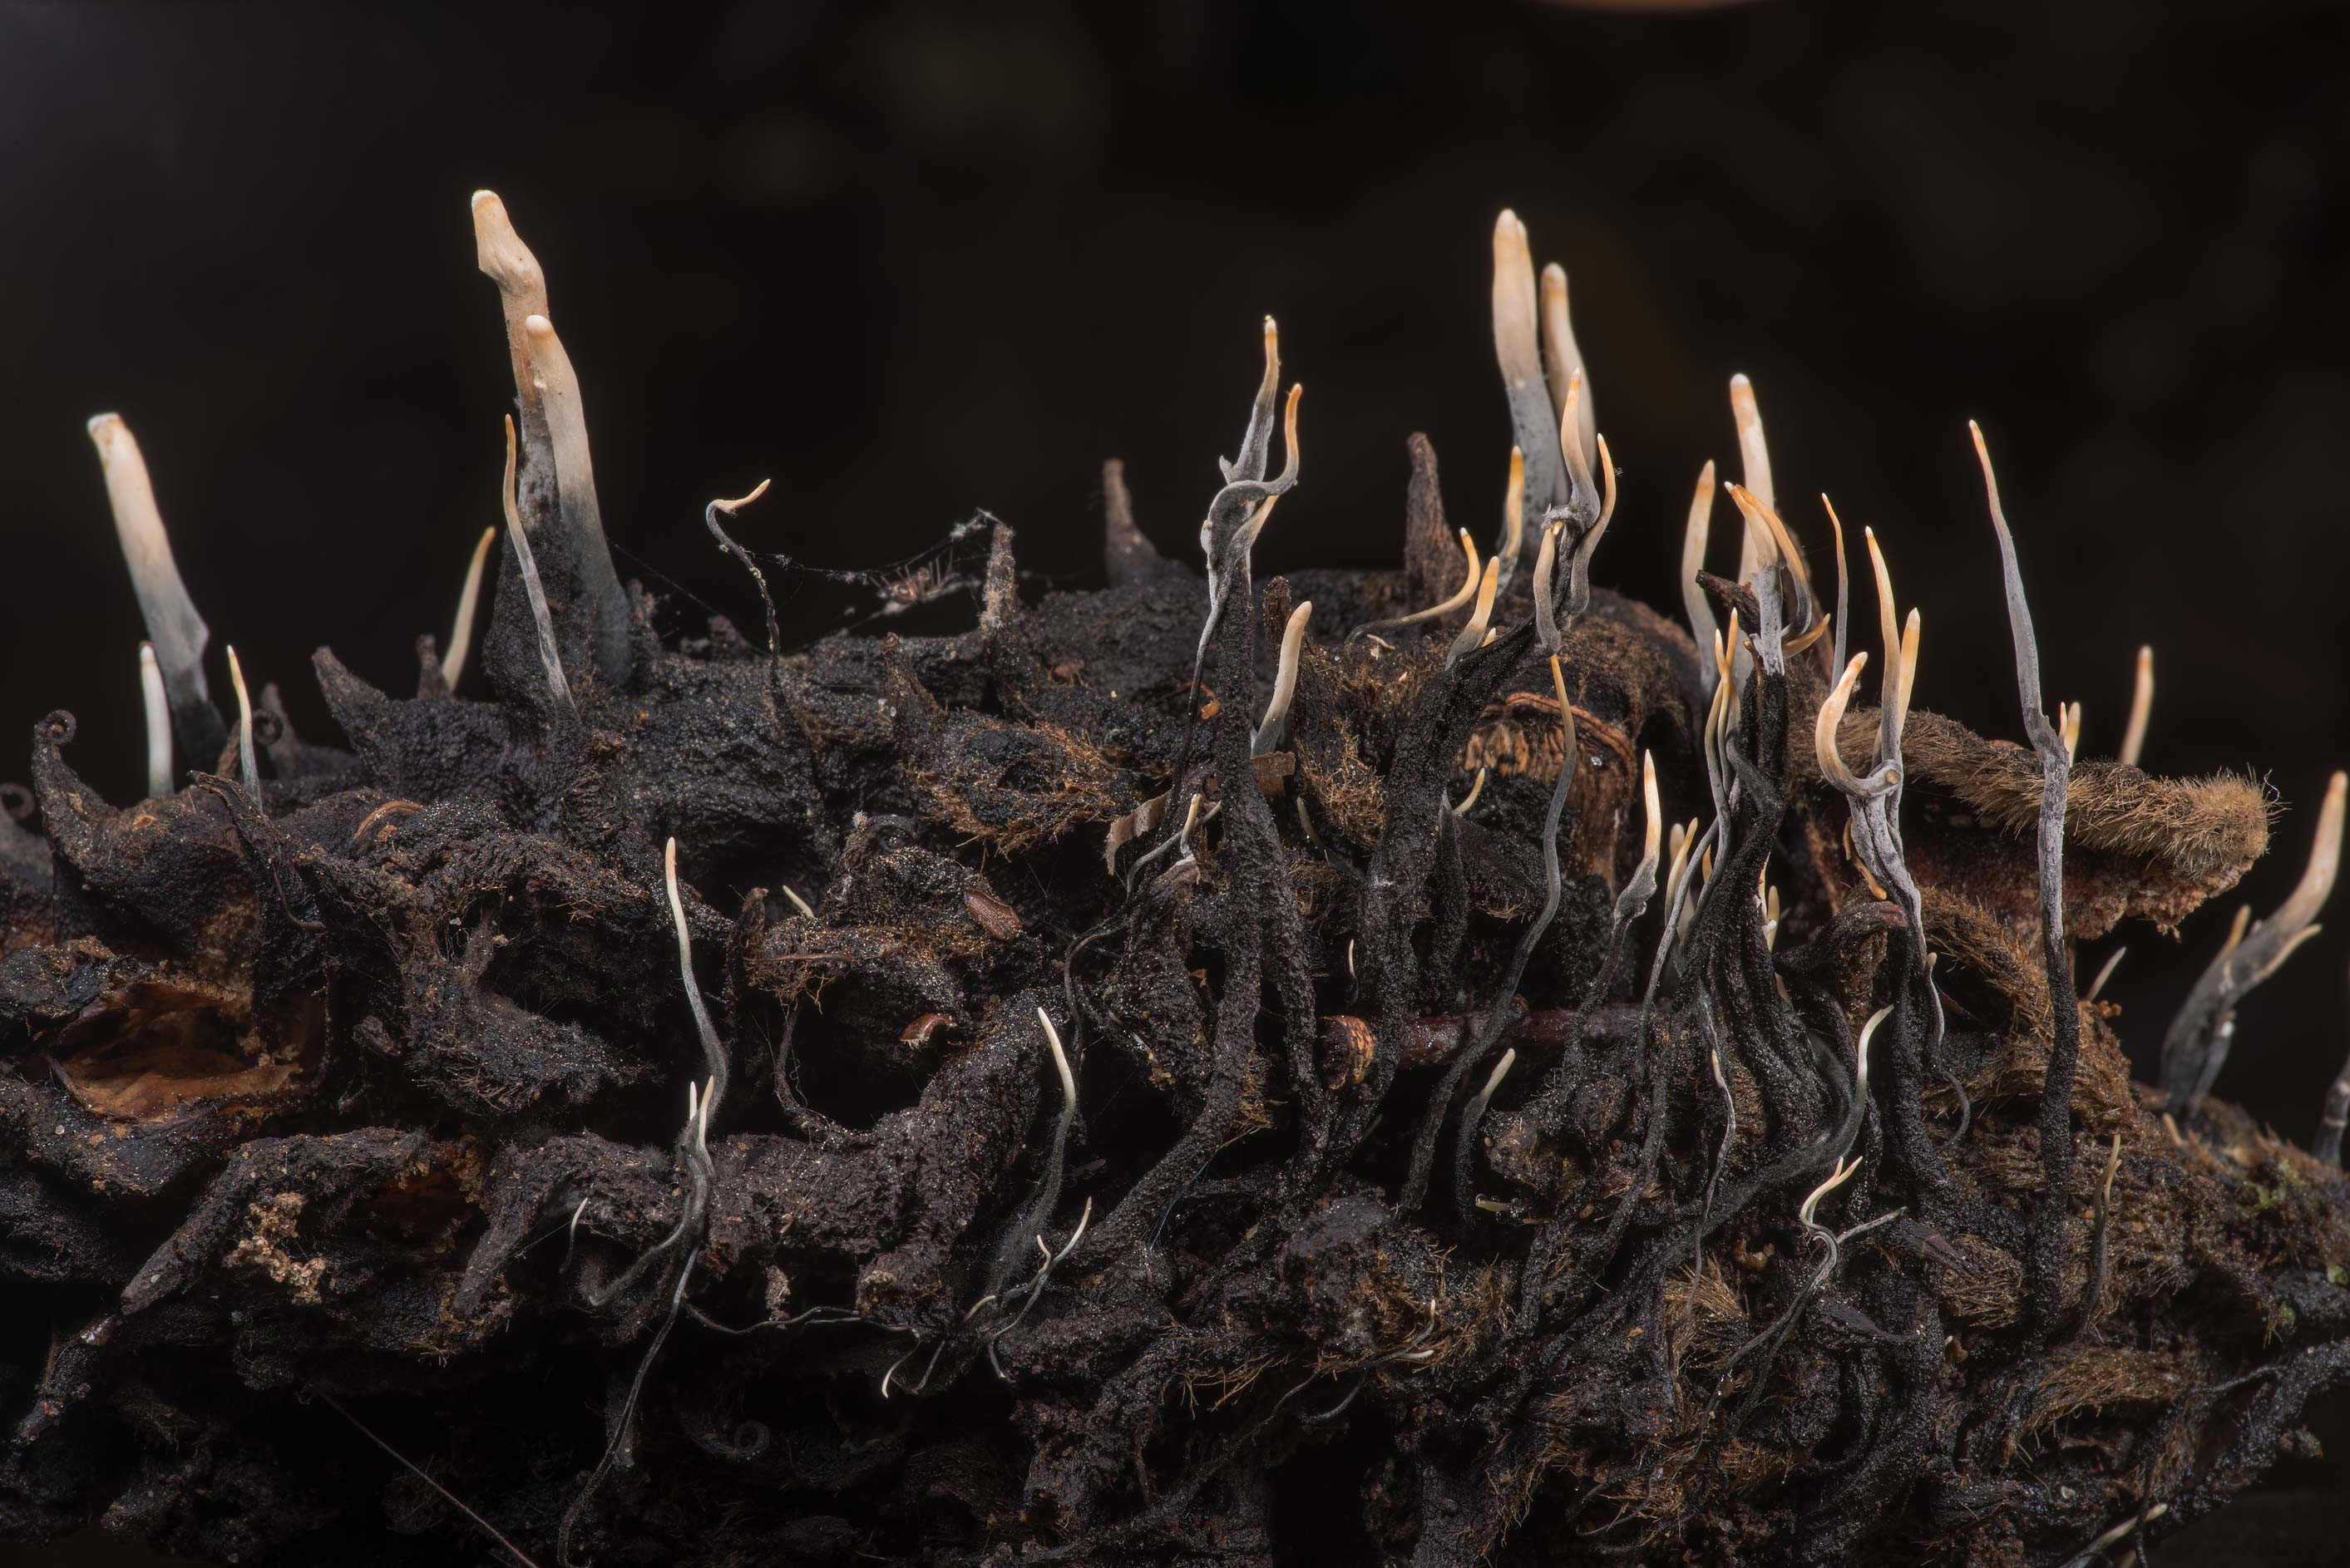 Xylaria magnoliae mushrooms on a magnolia cone in...National Forest. Shepherd, Texas